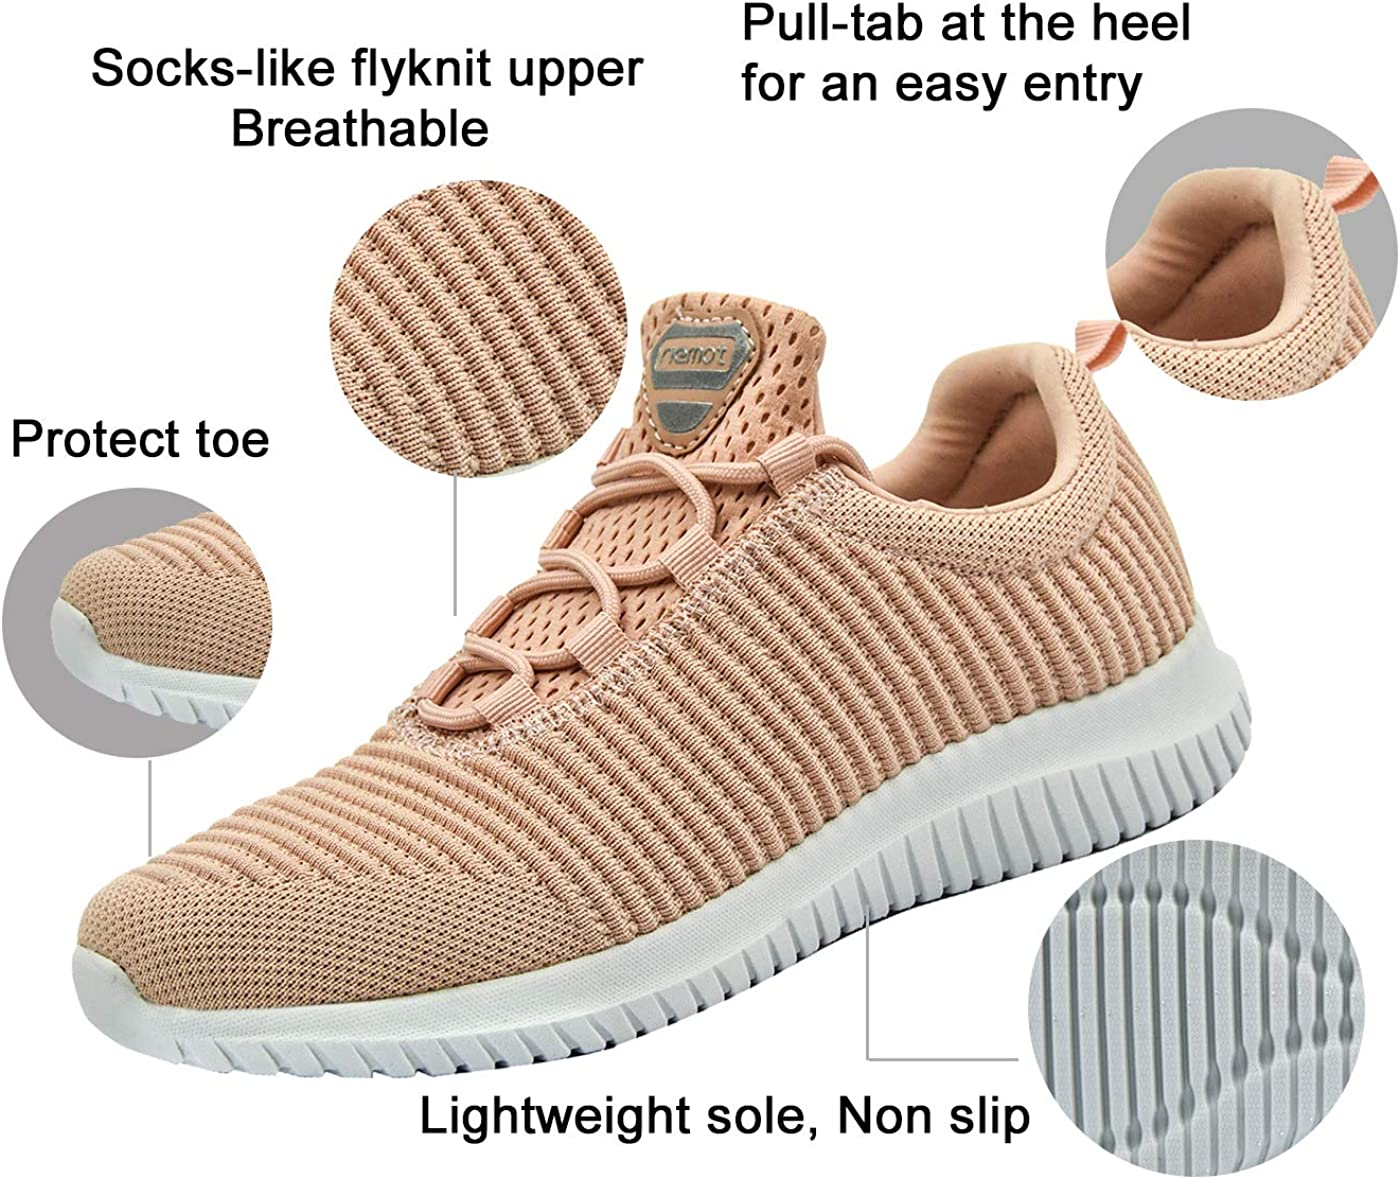 Slip-on Casual Shoes Women/'s Outdoor Gym Breathable Lightweight Running Sneakers